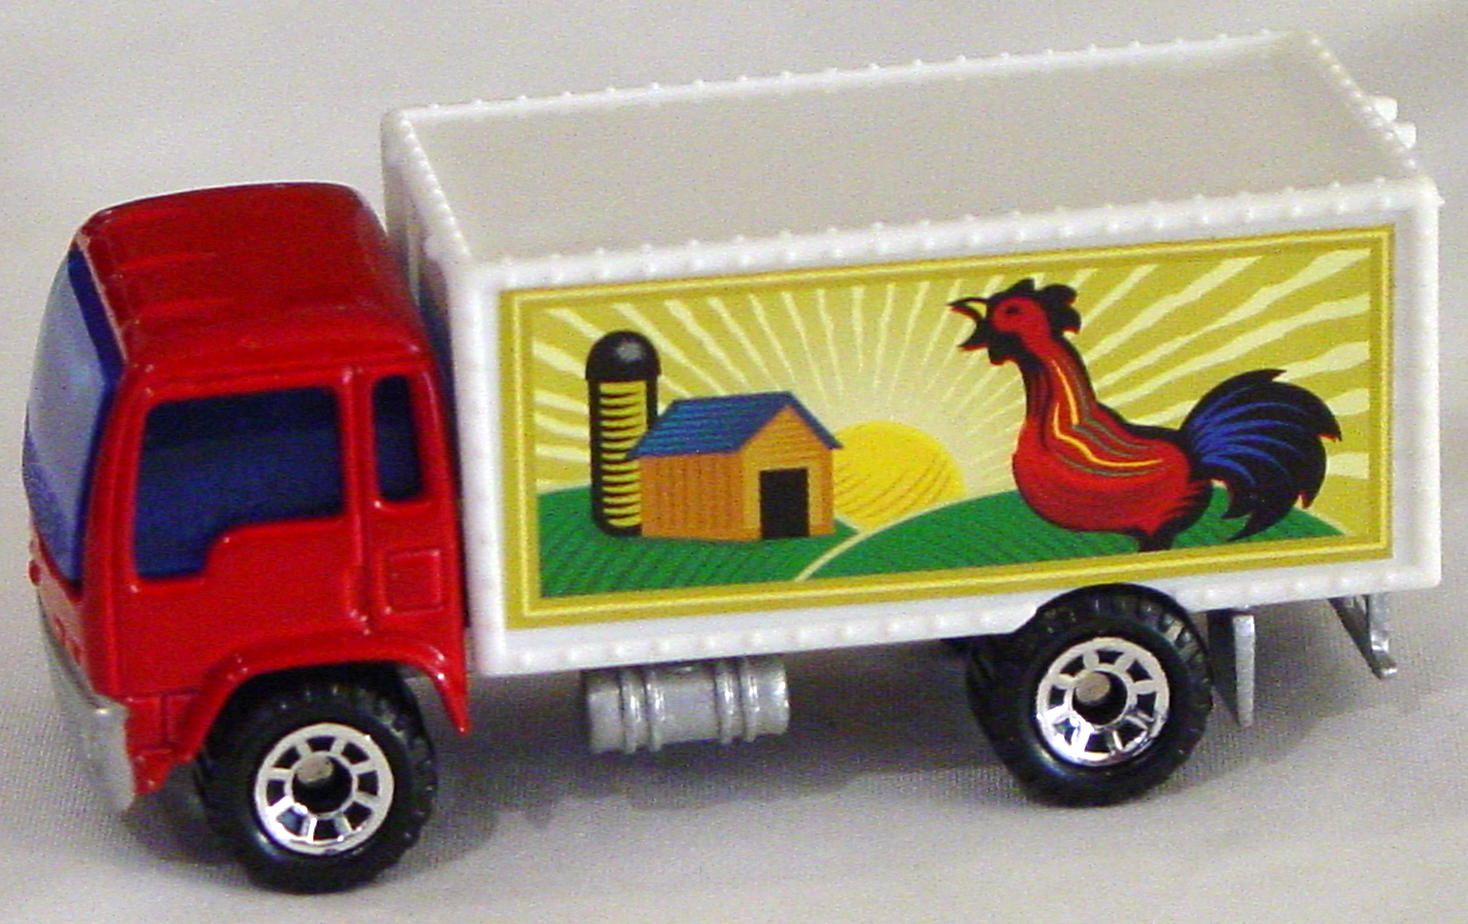 Offshore SuperFast 48 J 1 - Delivery Truck Red white cont lighter rooster tampo made in China